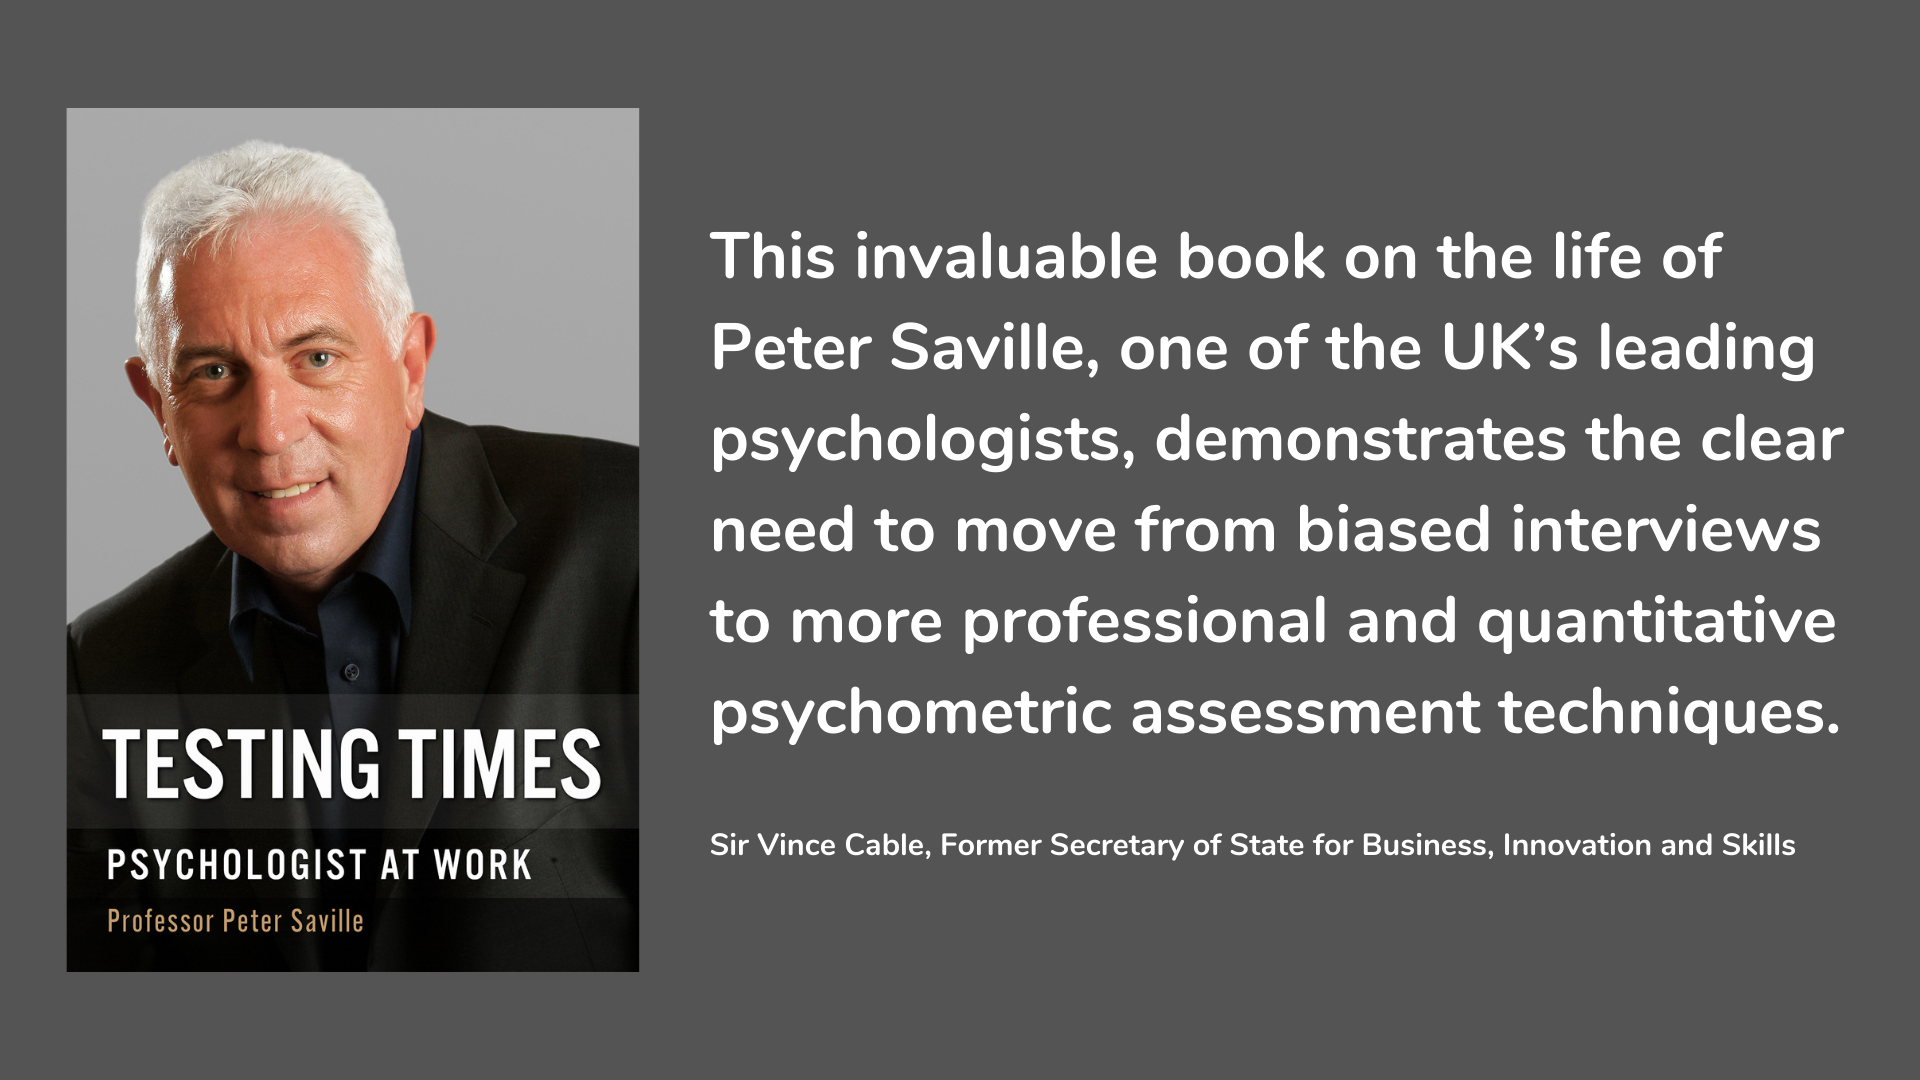 Testing Times: Psychologist At Work by Professor Peter Saville